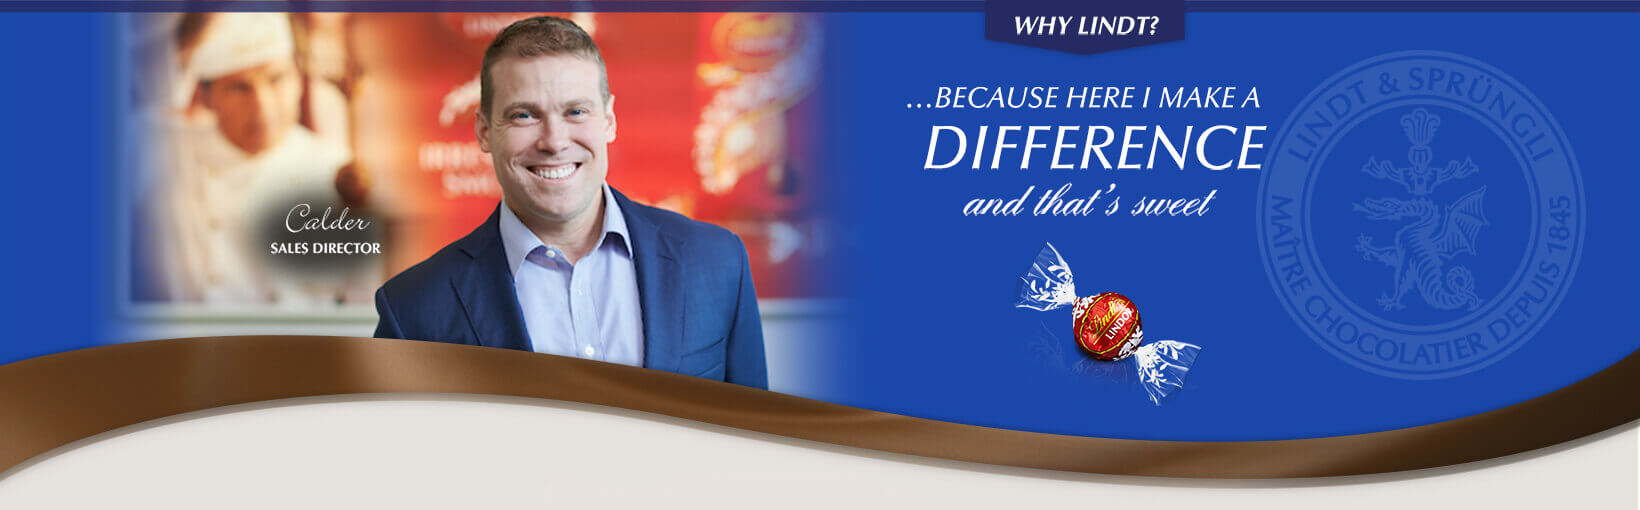 Why Lindt? …Because here I make a difference and that's sweet. Matthew, Branch Manager